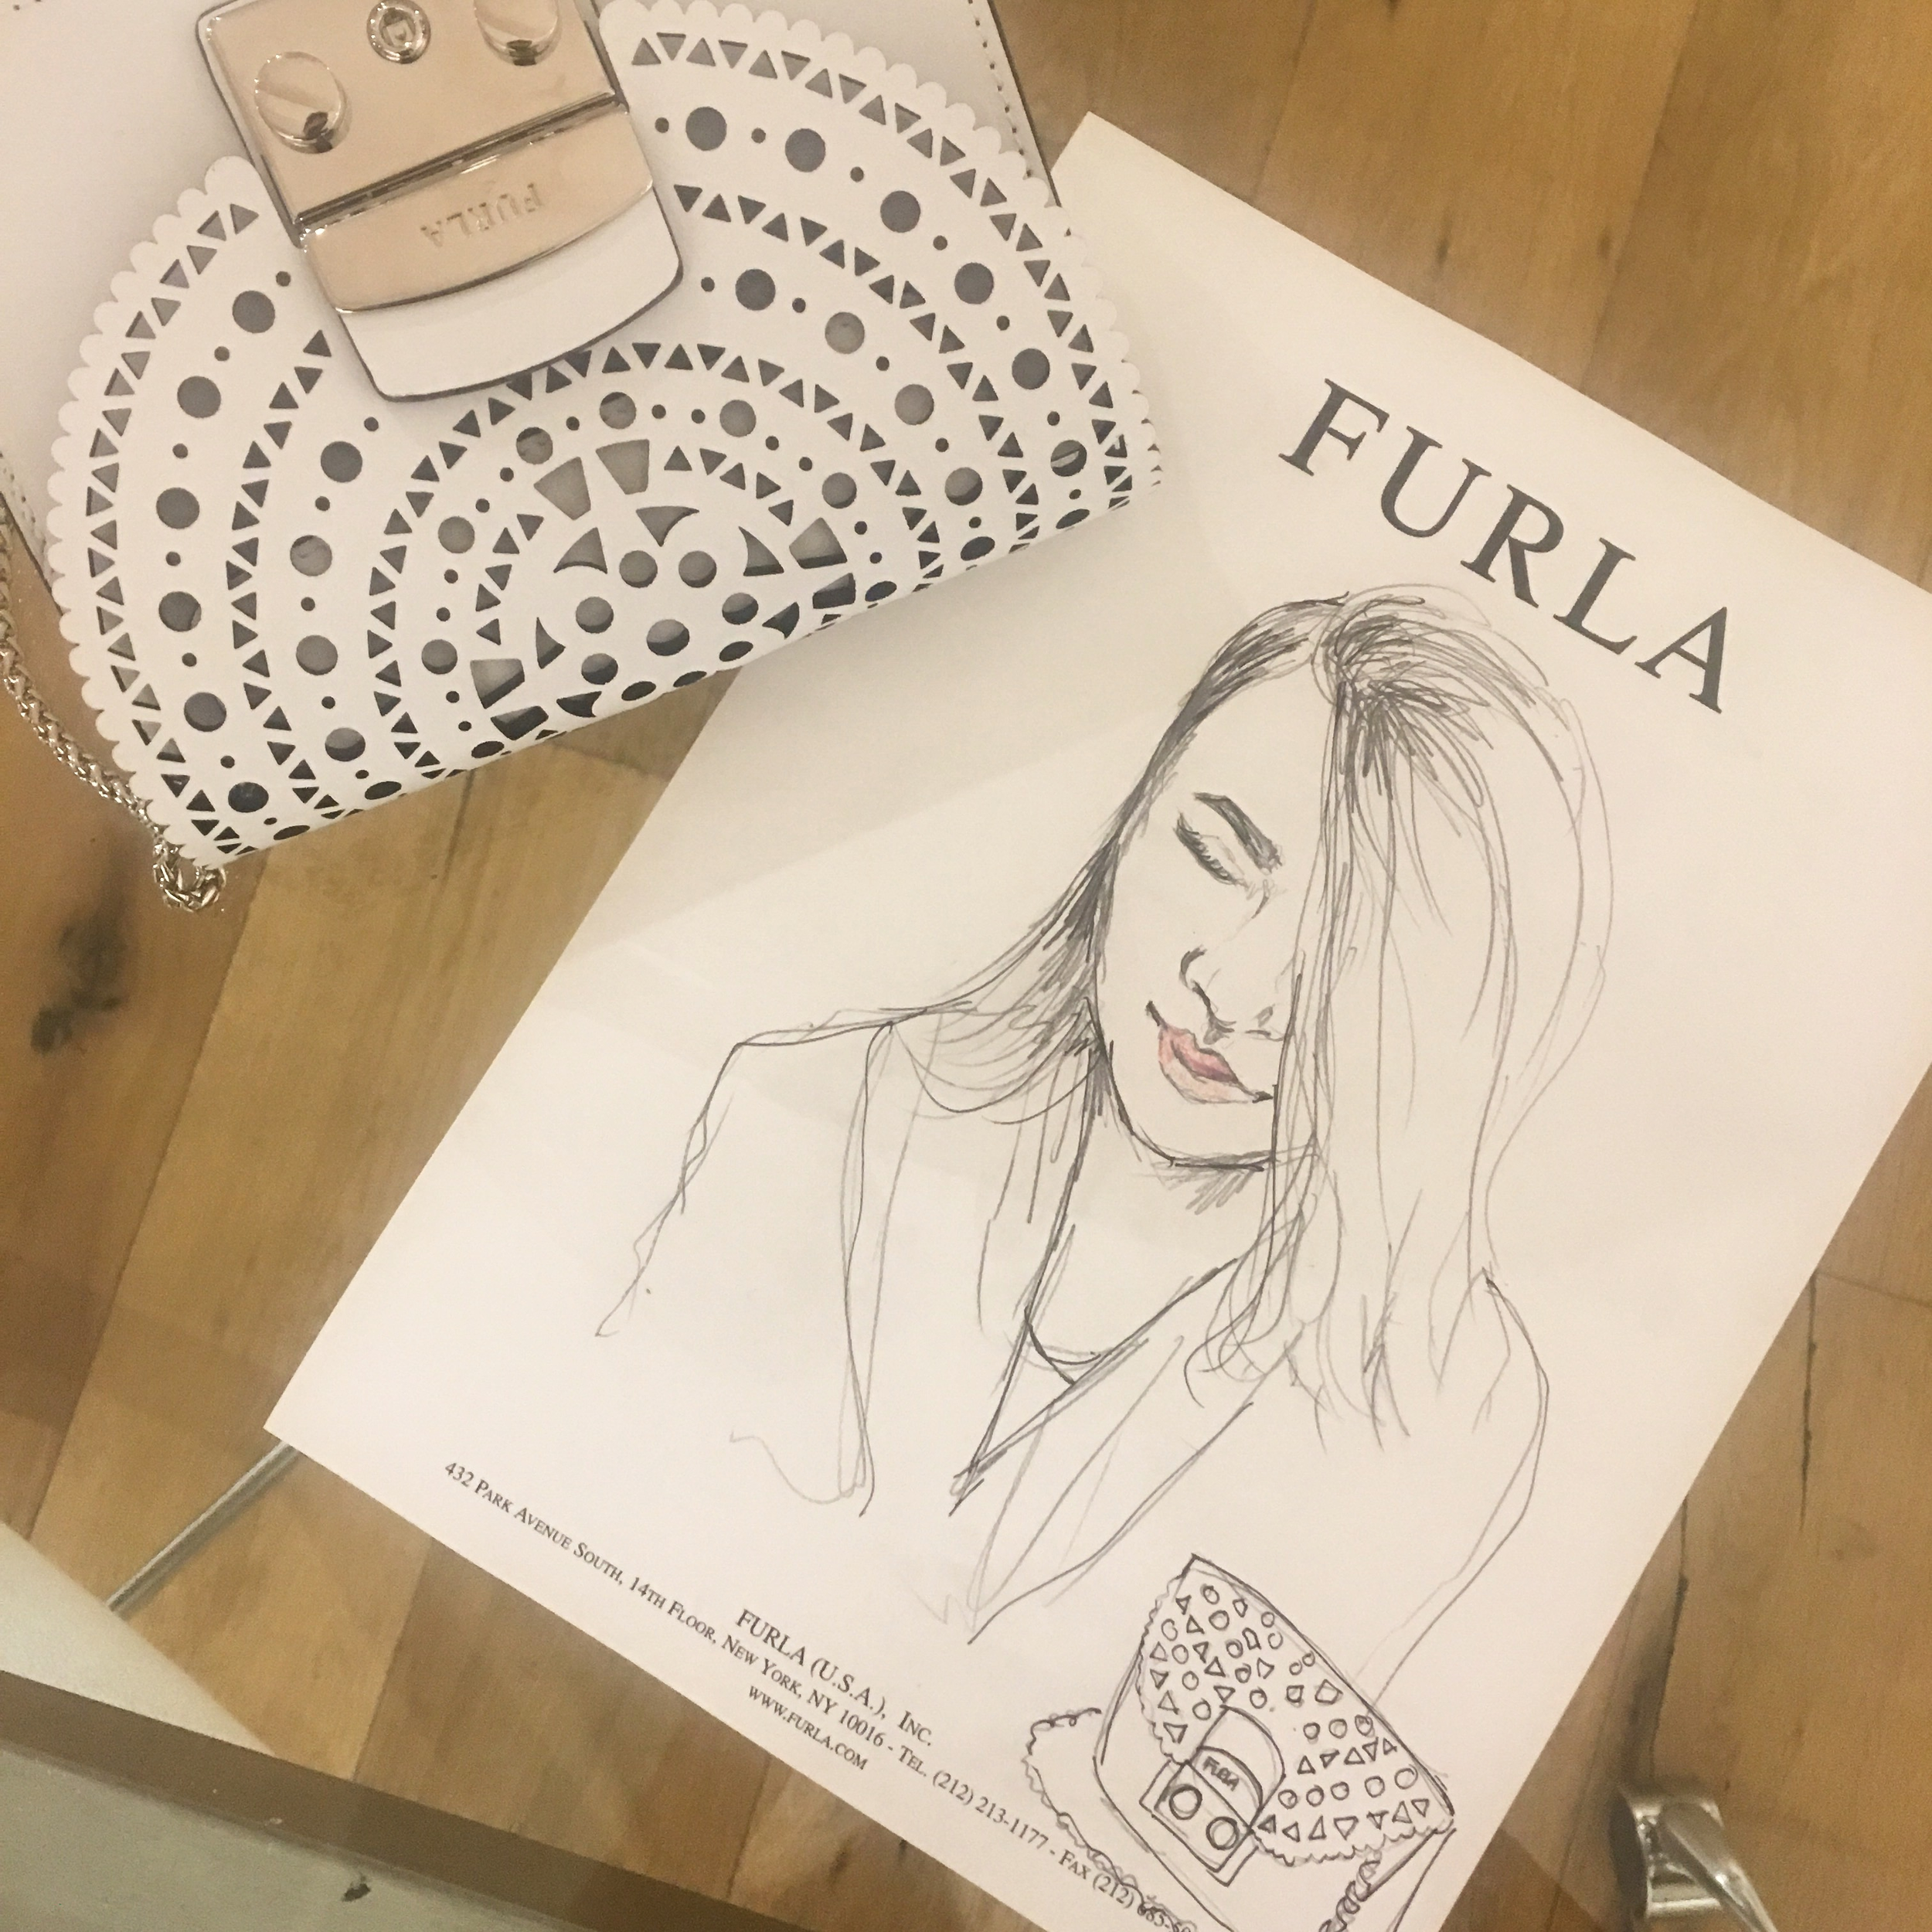 A live sketch of a fashion blogger at the Furla event in their showroom, featuring a handbag from their line.